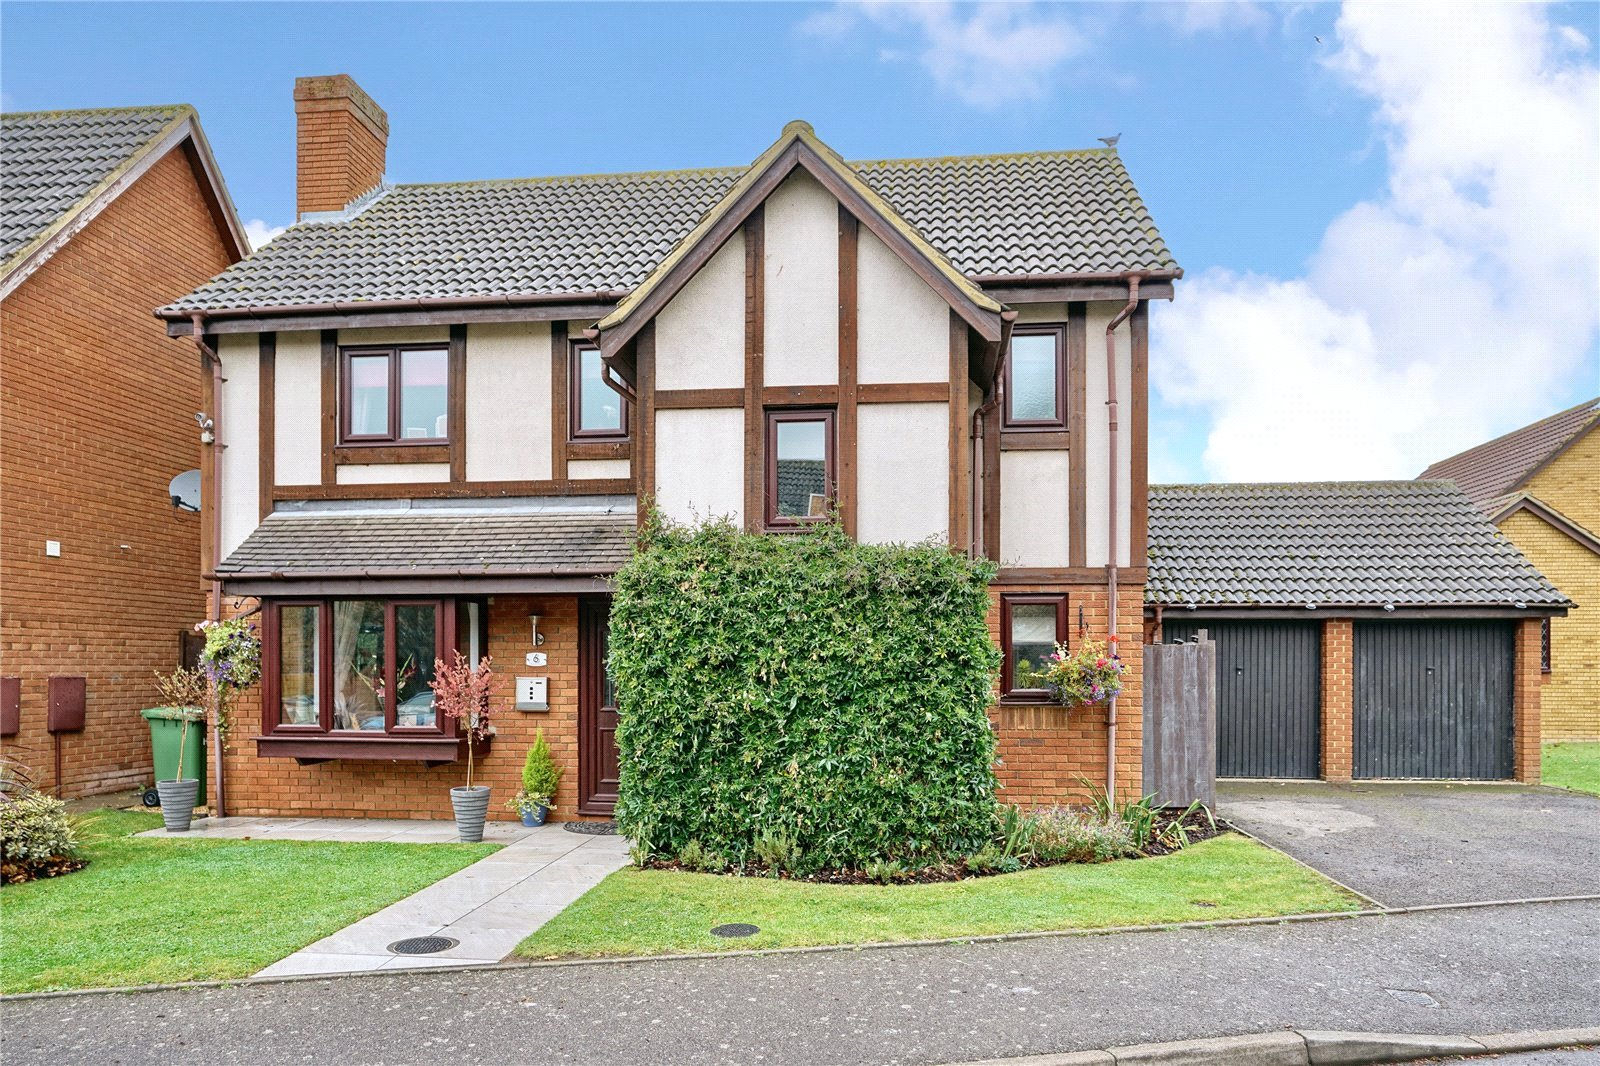 4 bed house for sale in Yaxley, PE7 3WN  - Property Image 1